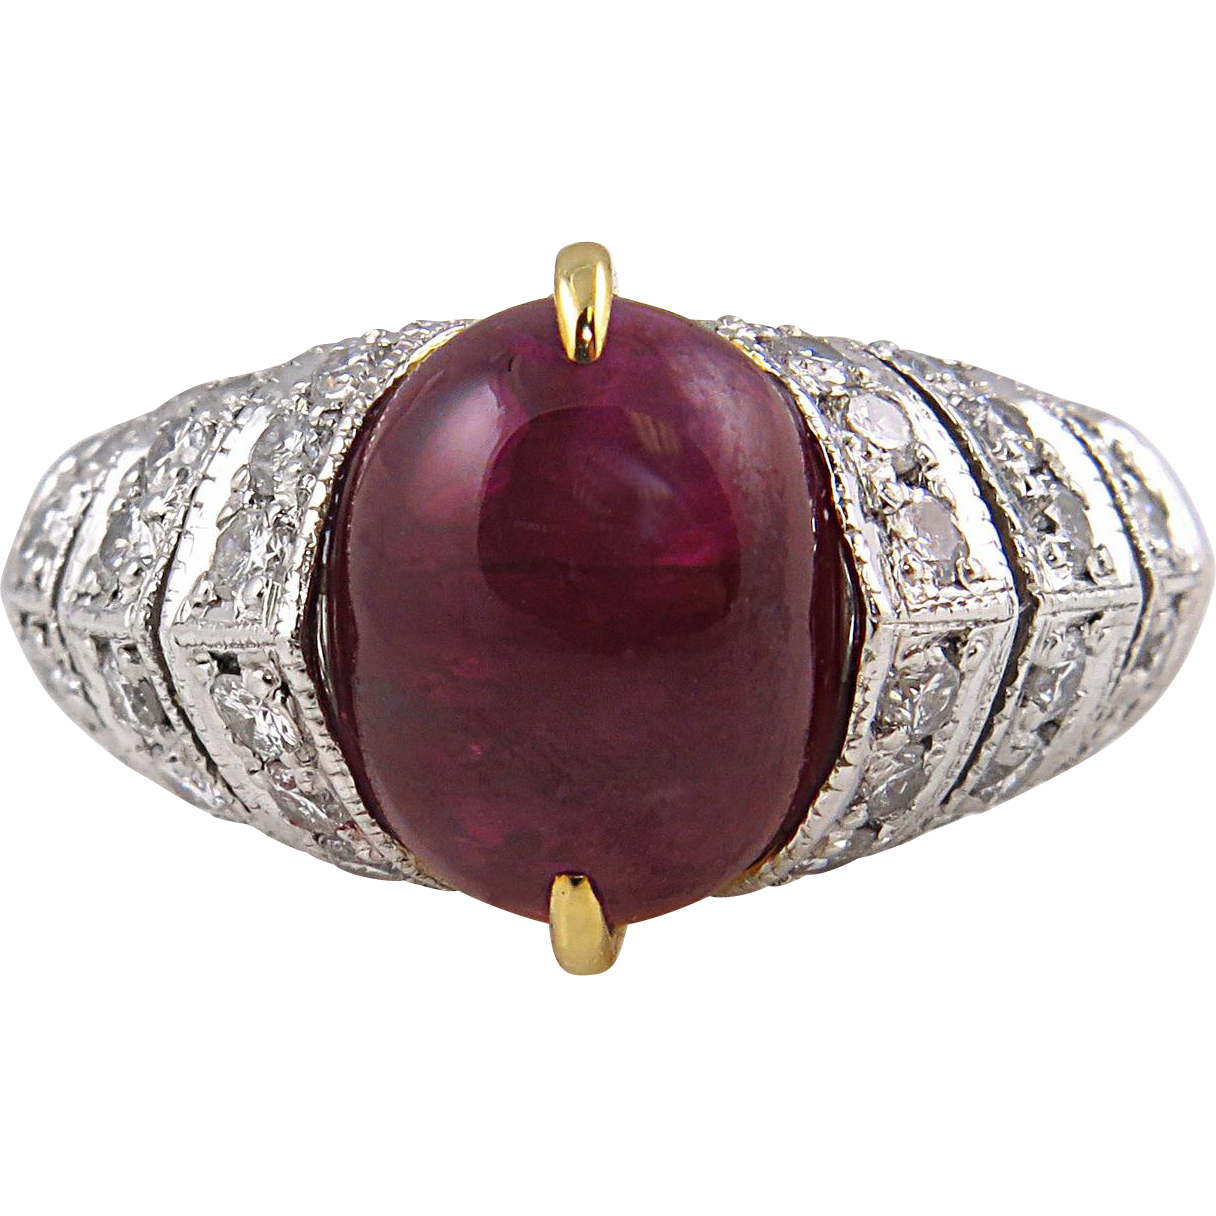 Vintage Gia 5 43ct Natural Pigeon Blood Red Ruby Diamond